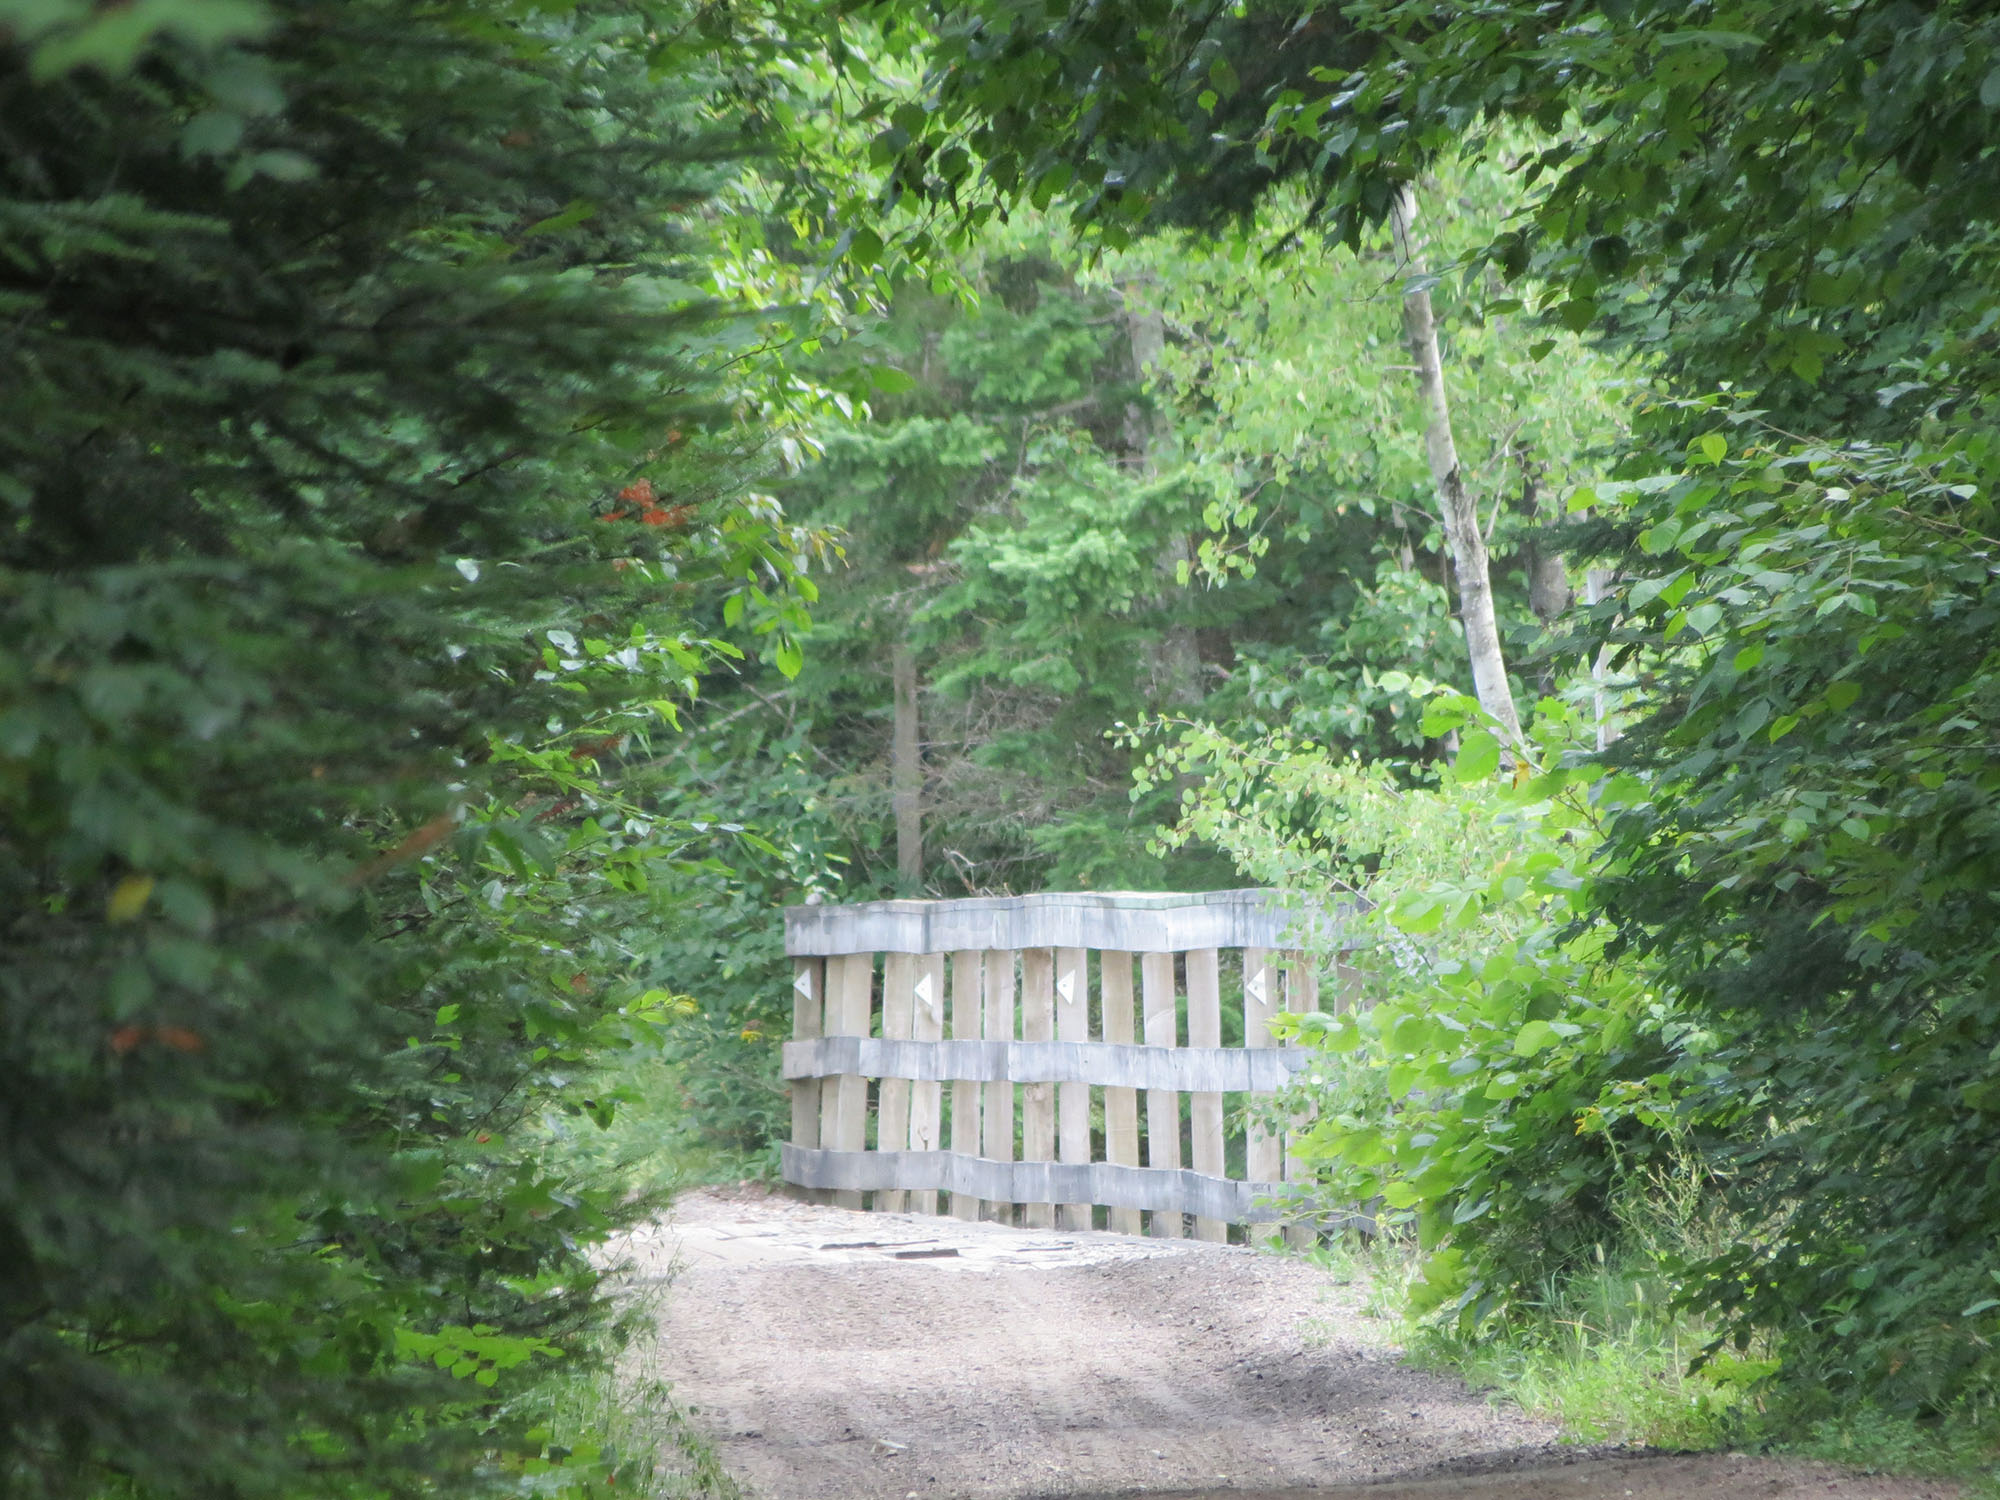 A simple wooden gate opens to a trail through exquisite natural beauty. Photo by Sarah Vance.